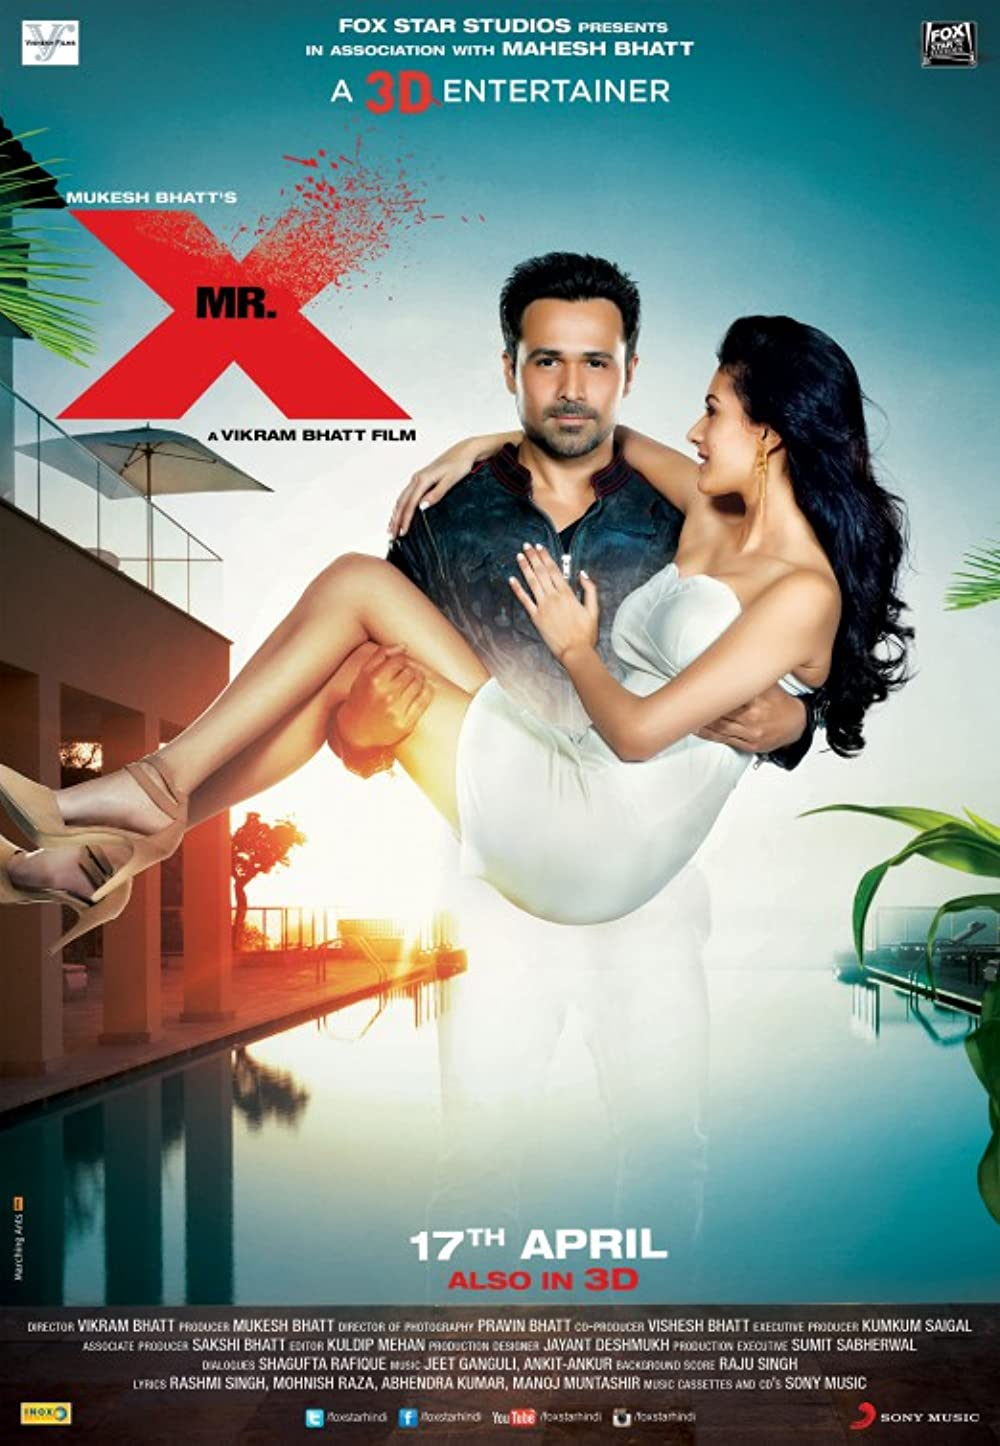 Mr. X (2015) Hindi Movie 720p WEB-DL x264 AAC 800MB Download